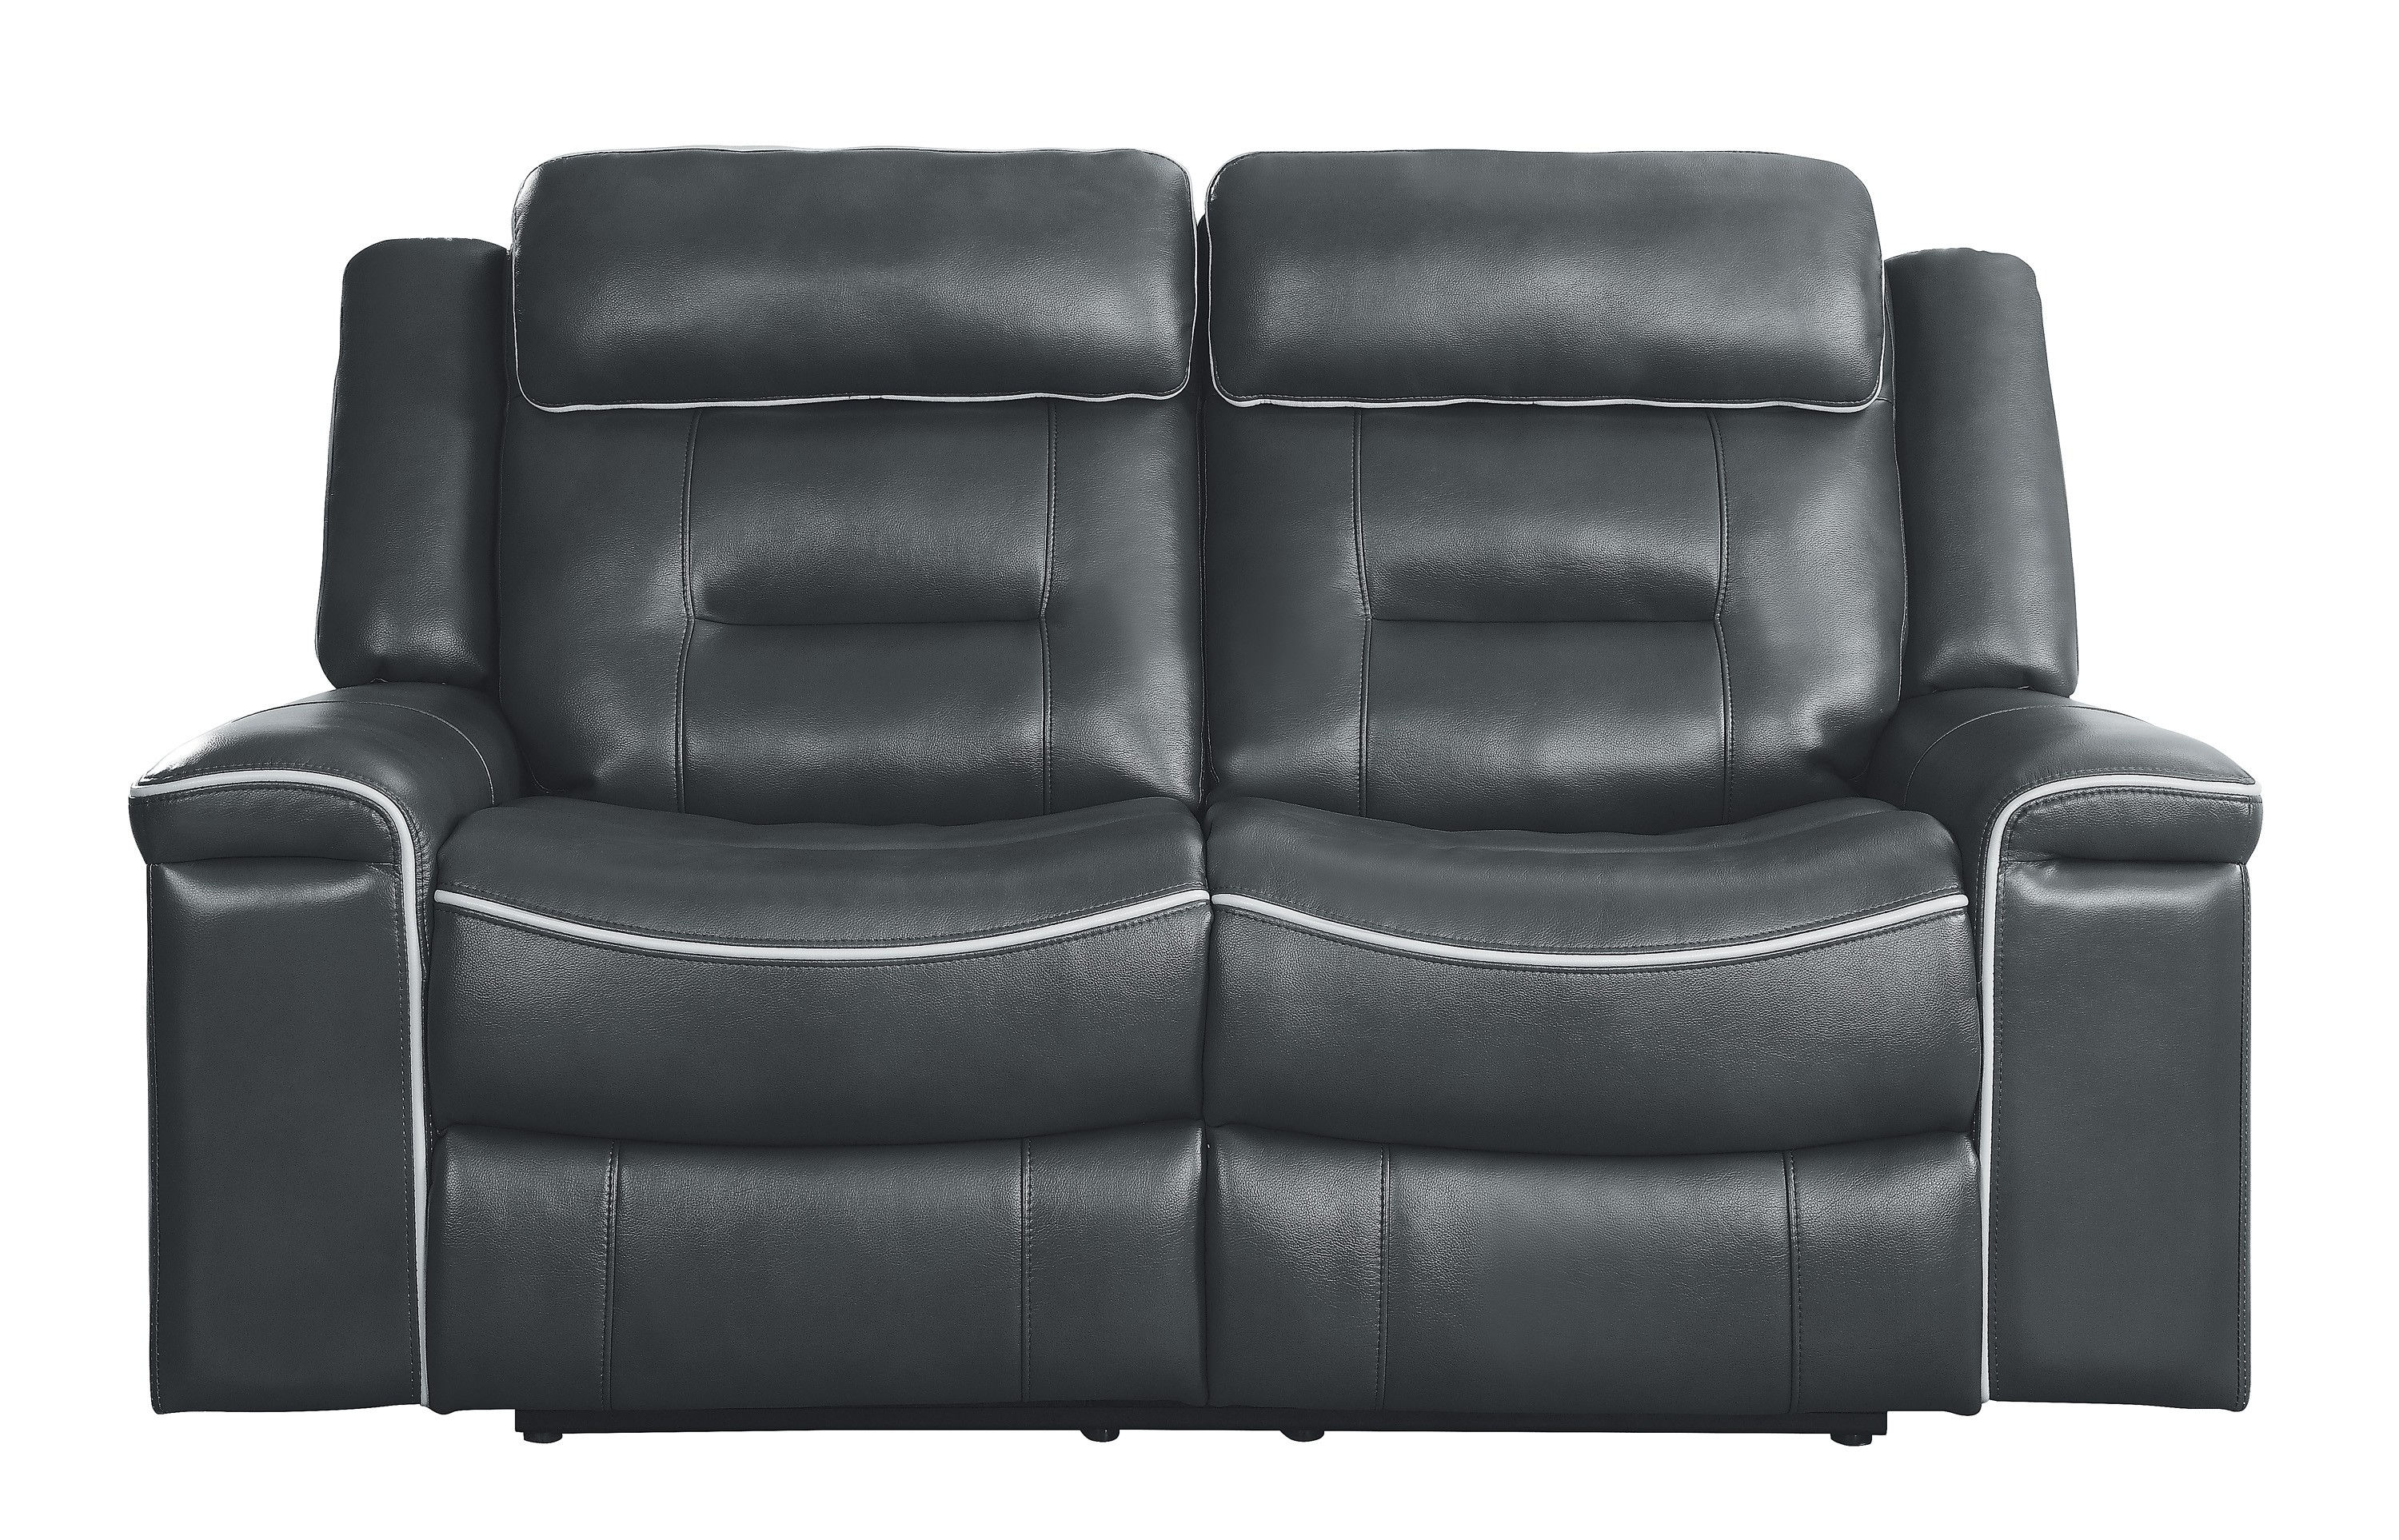 Tremendous Home Elegance Darwan Dark Gray Leather Reclining Loveseat Alphanode Cool Chair Designs And Ideas Alphanodeonline